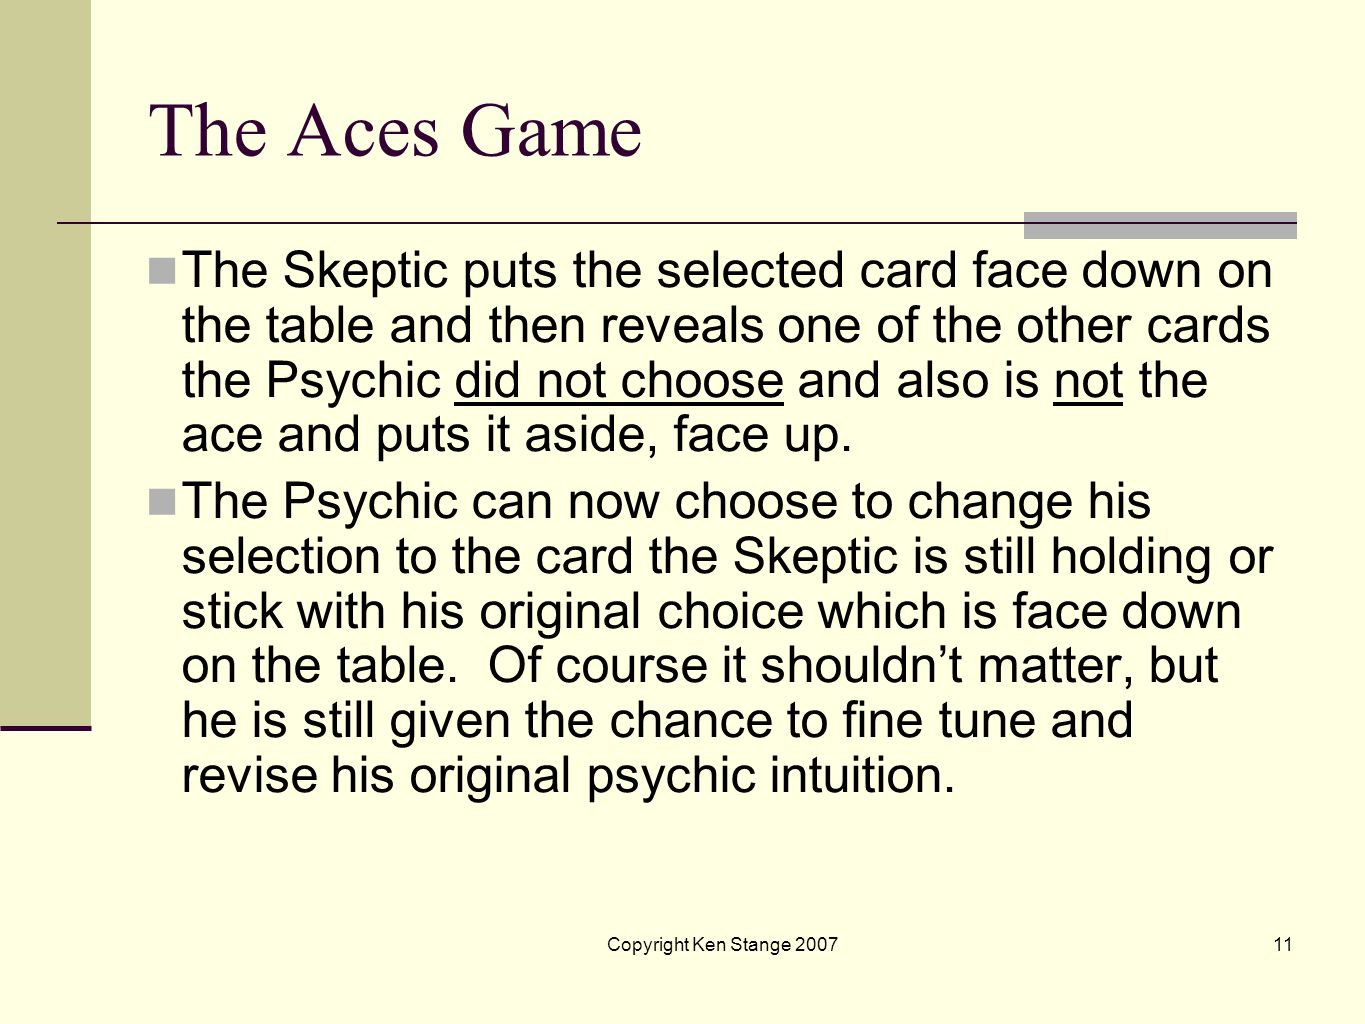 Copyright Ken Stange 200710 1: The Aces Game There are two players in this game: A Skeptic and a Psychic. Each brings $10 to the game. There are three